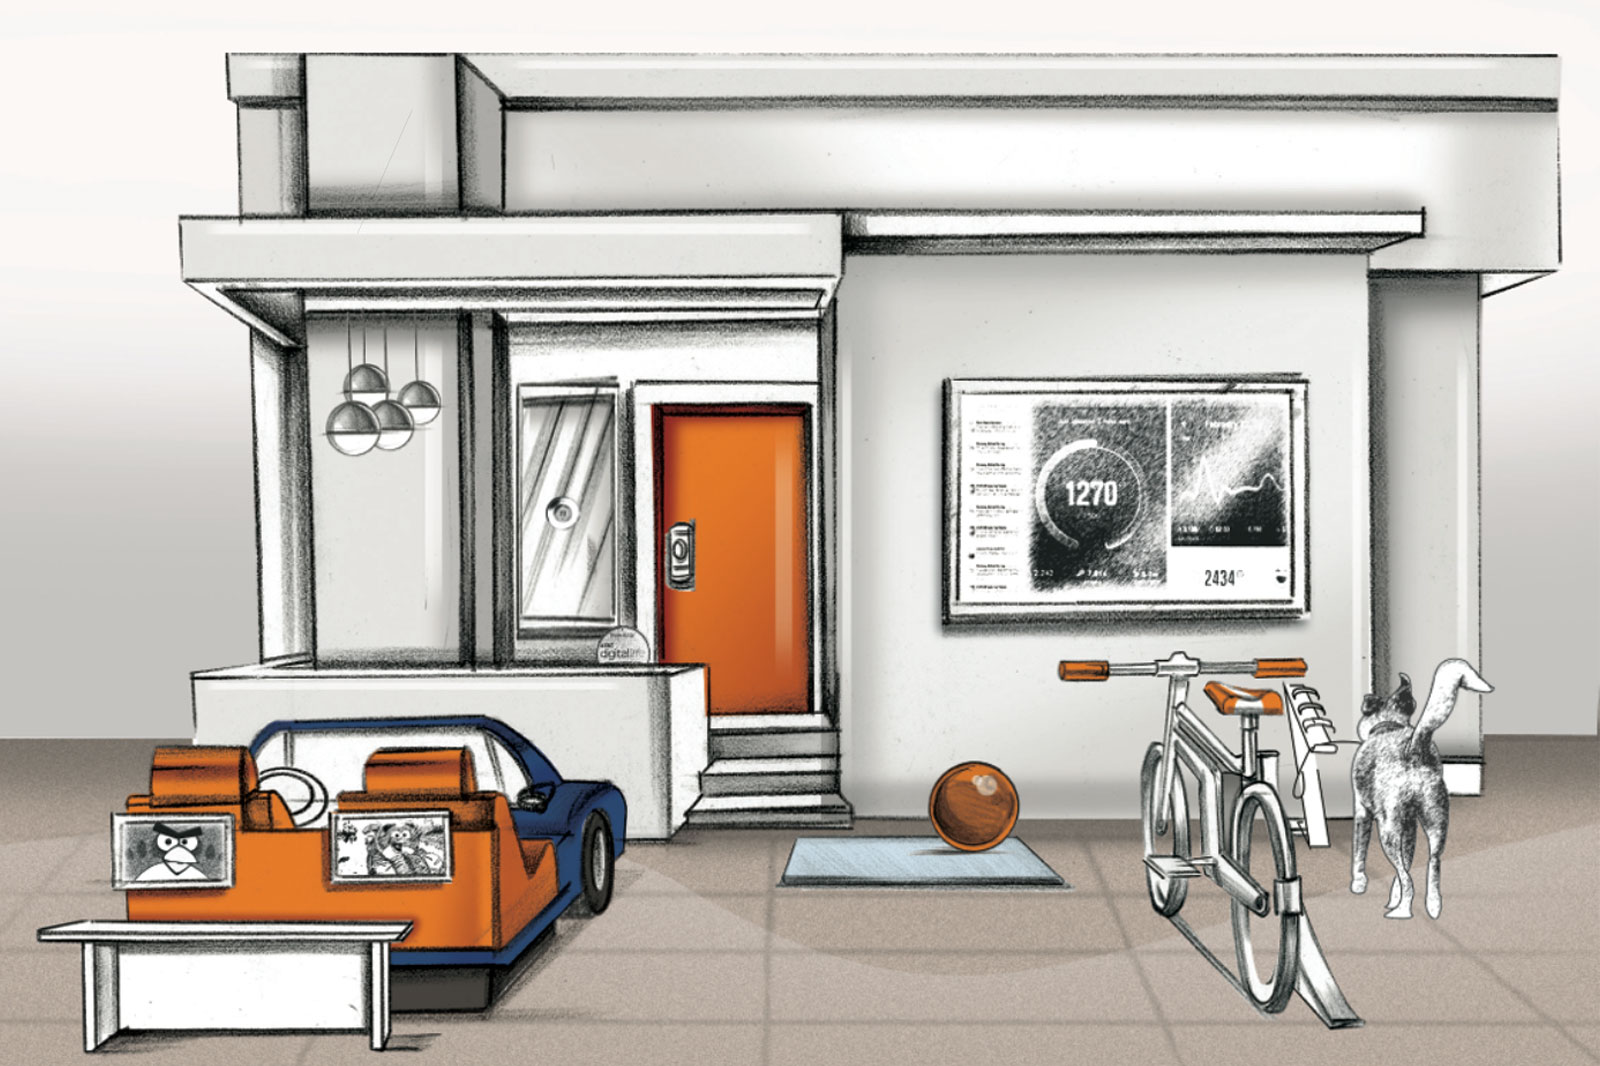 AT&T Retail Experience - Retail concept Store of The Future